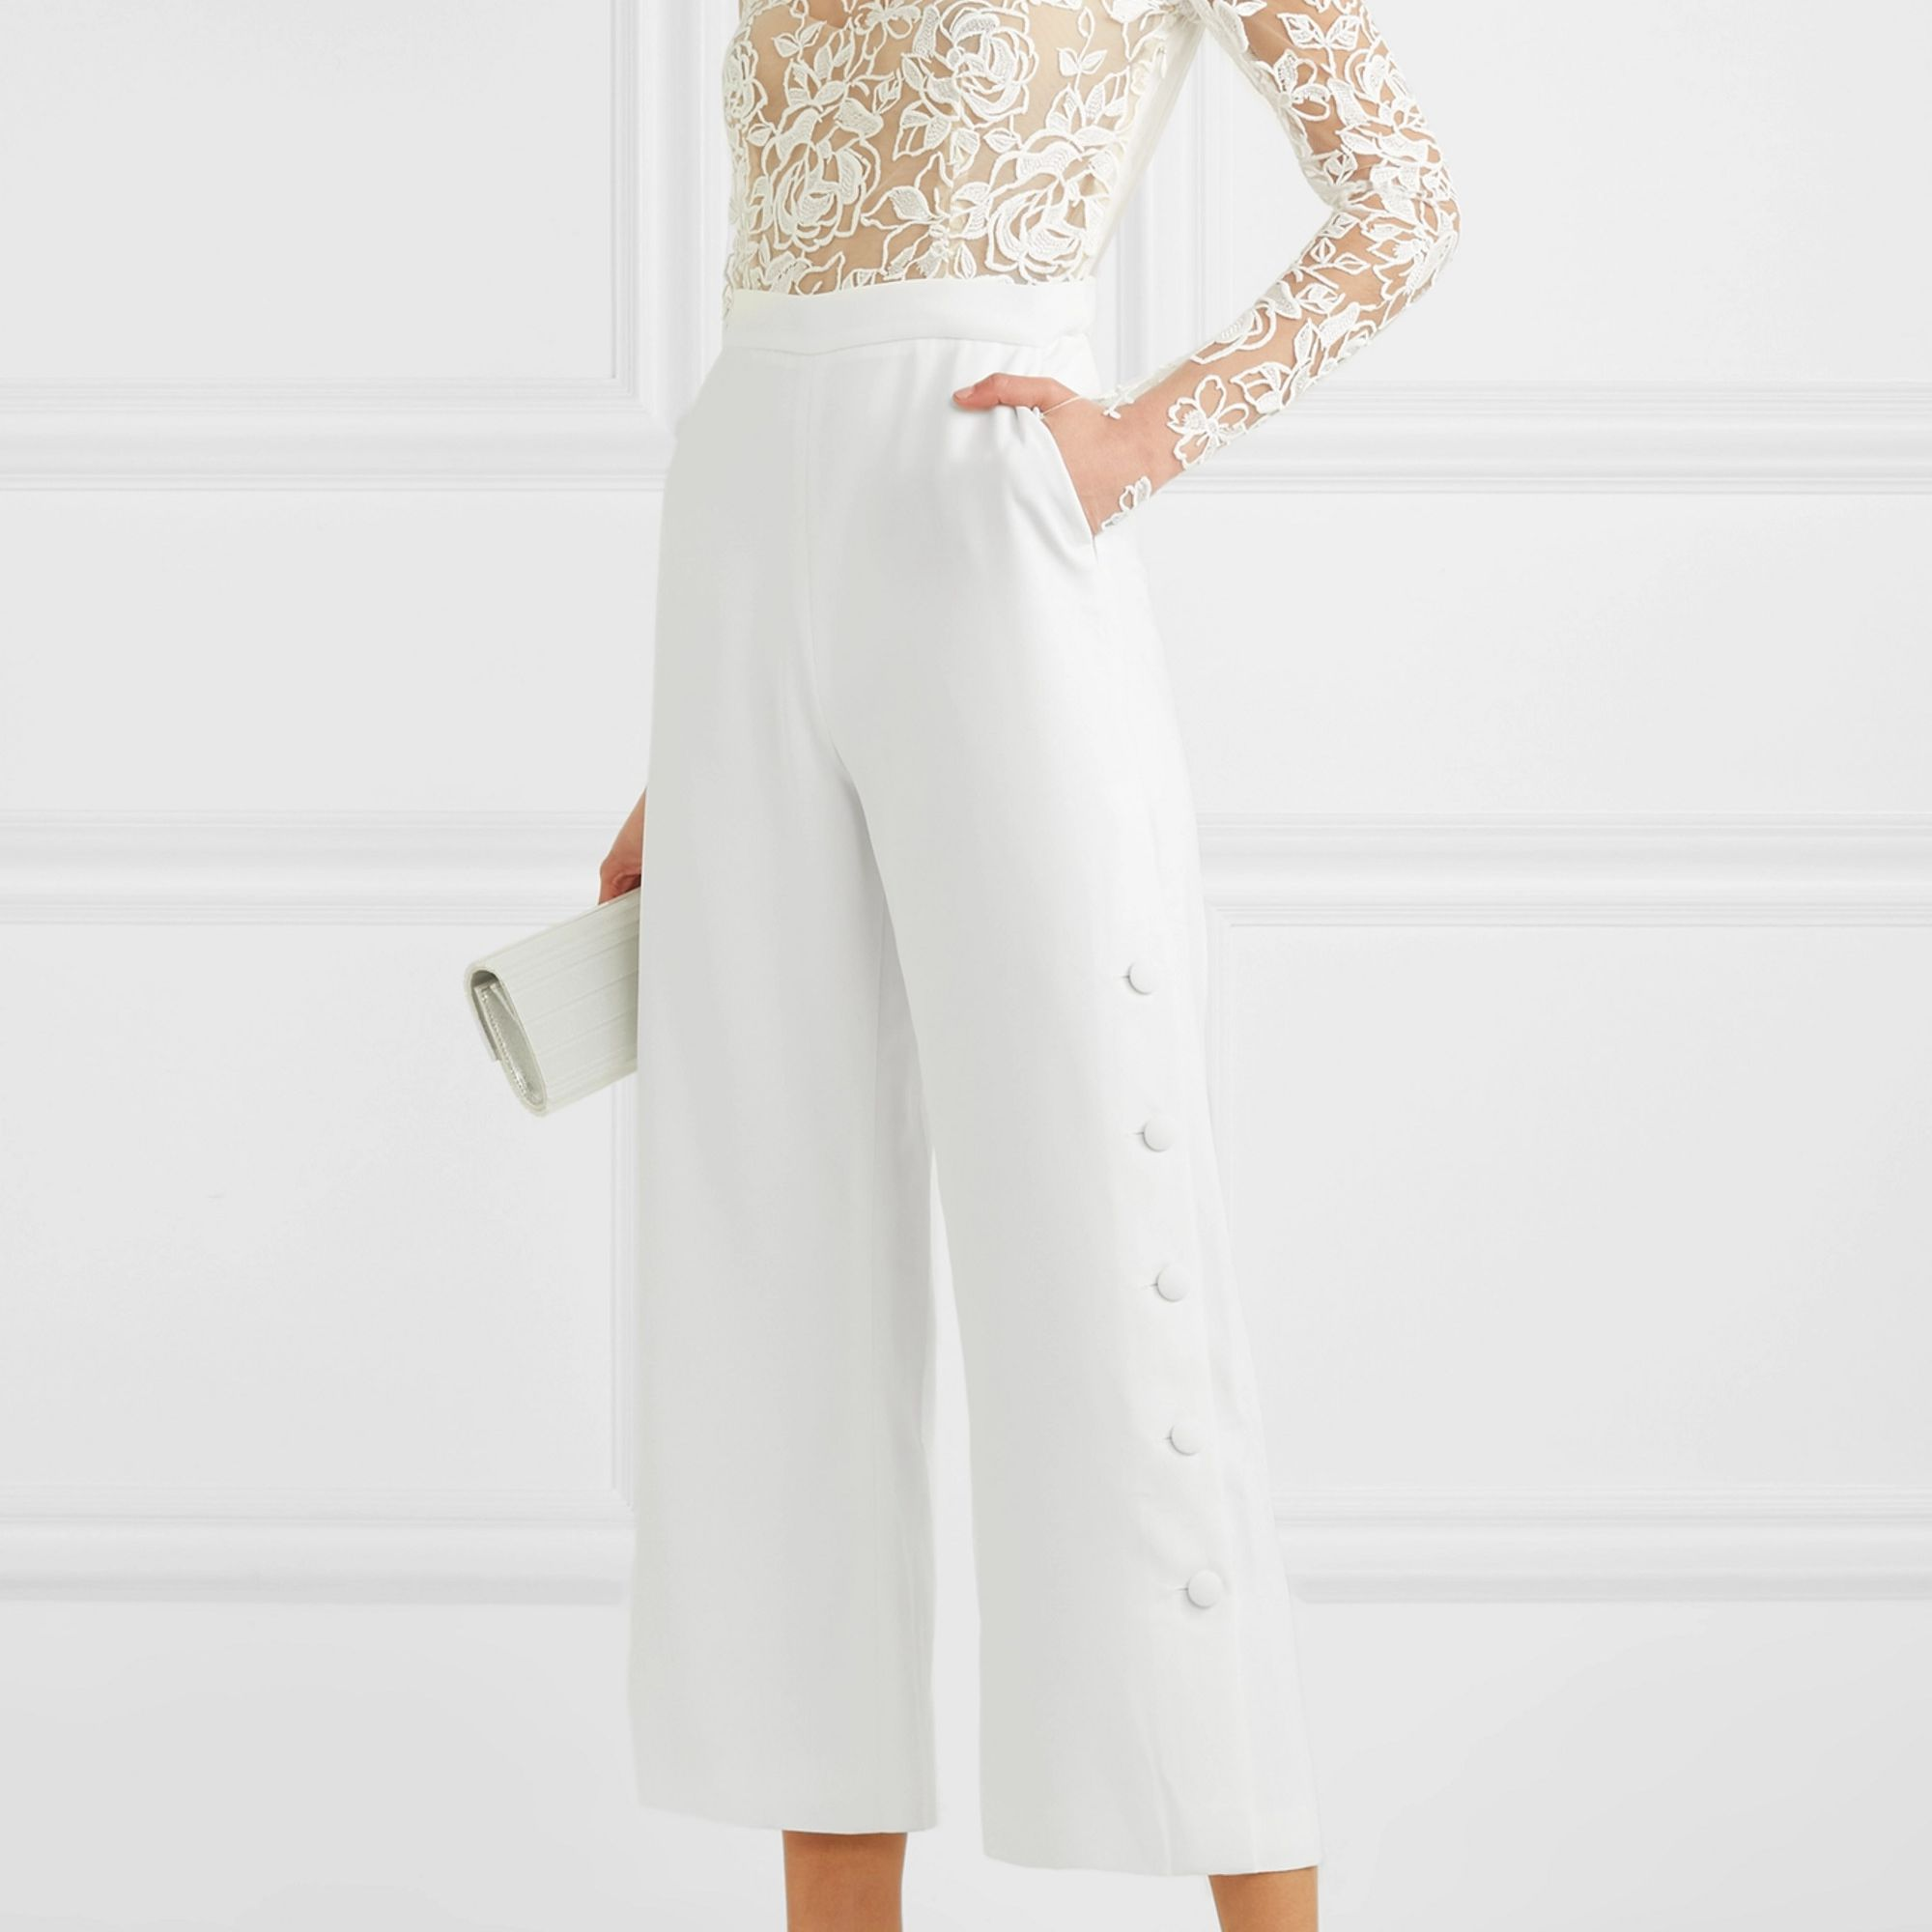 floral wedding satin bridal jumpsuit White wedding two-piece bridal jumpsuit and jacket with train modern crepe pantsuit wedding style